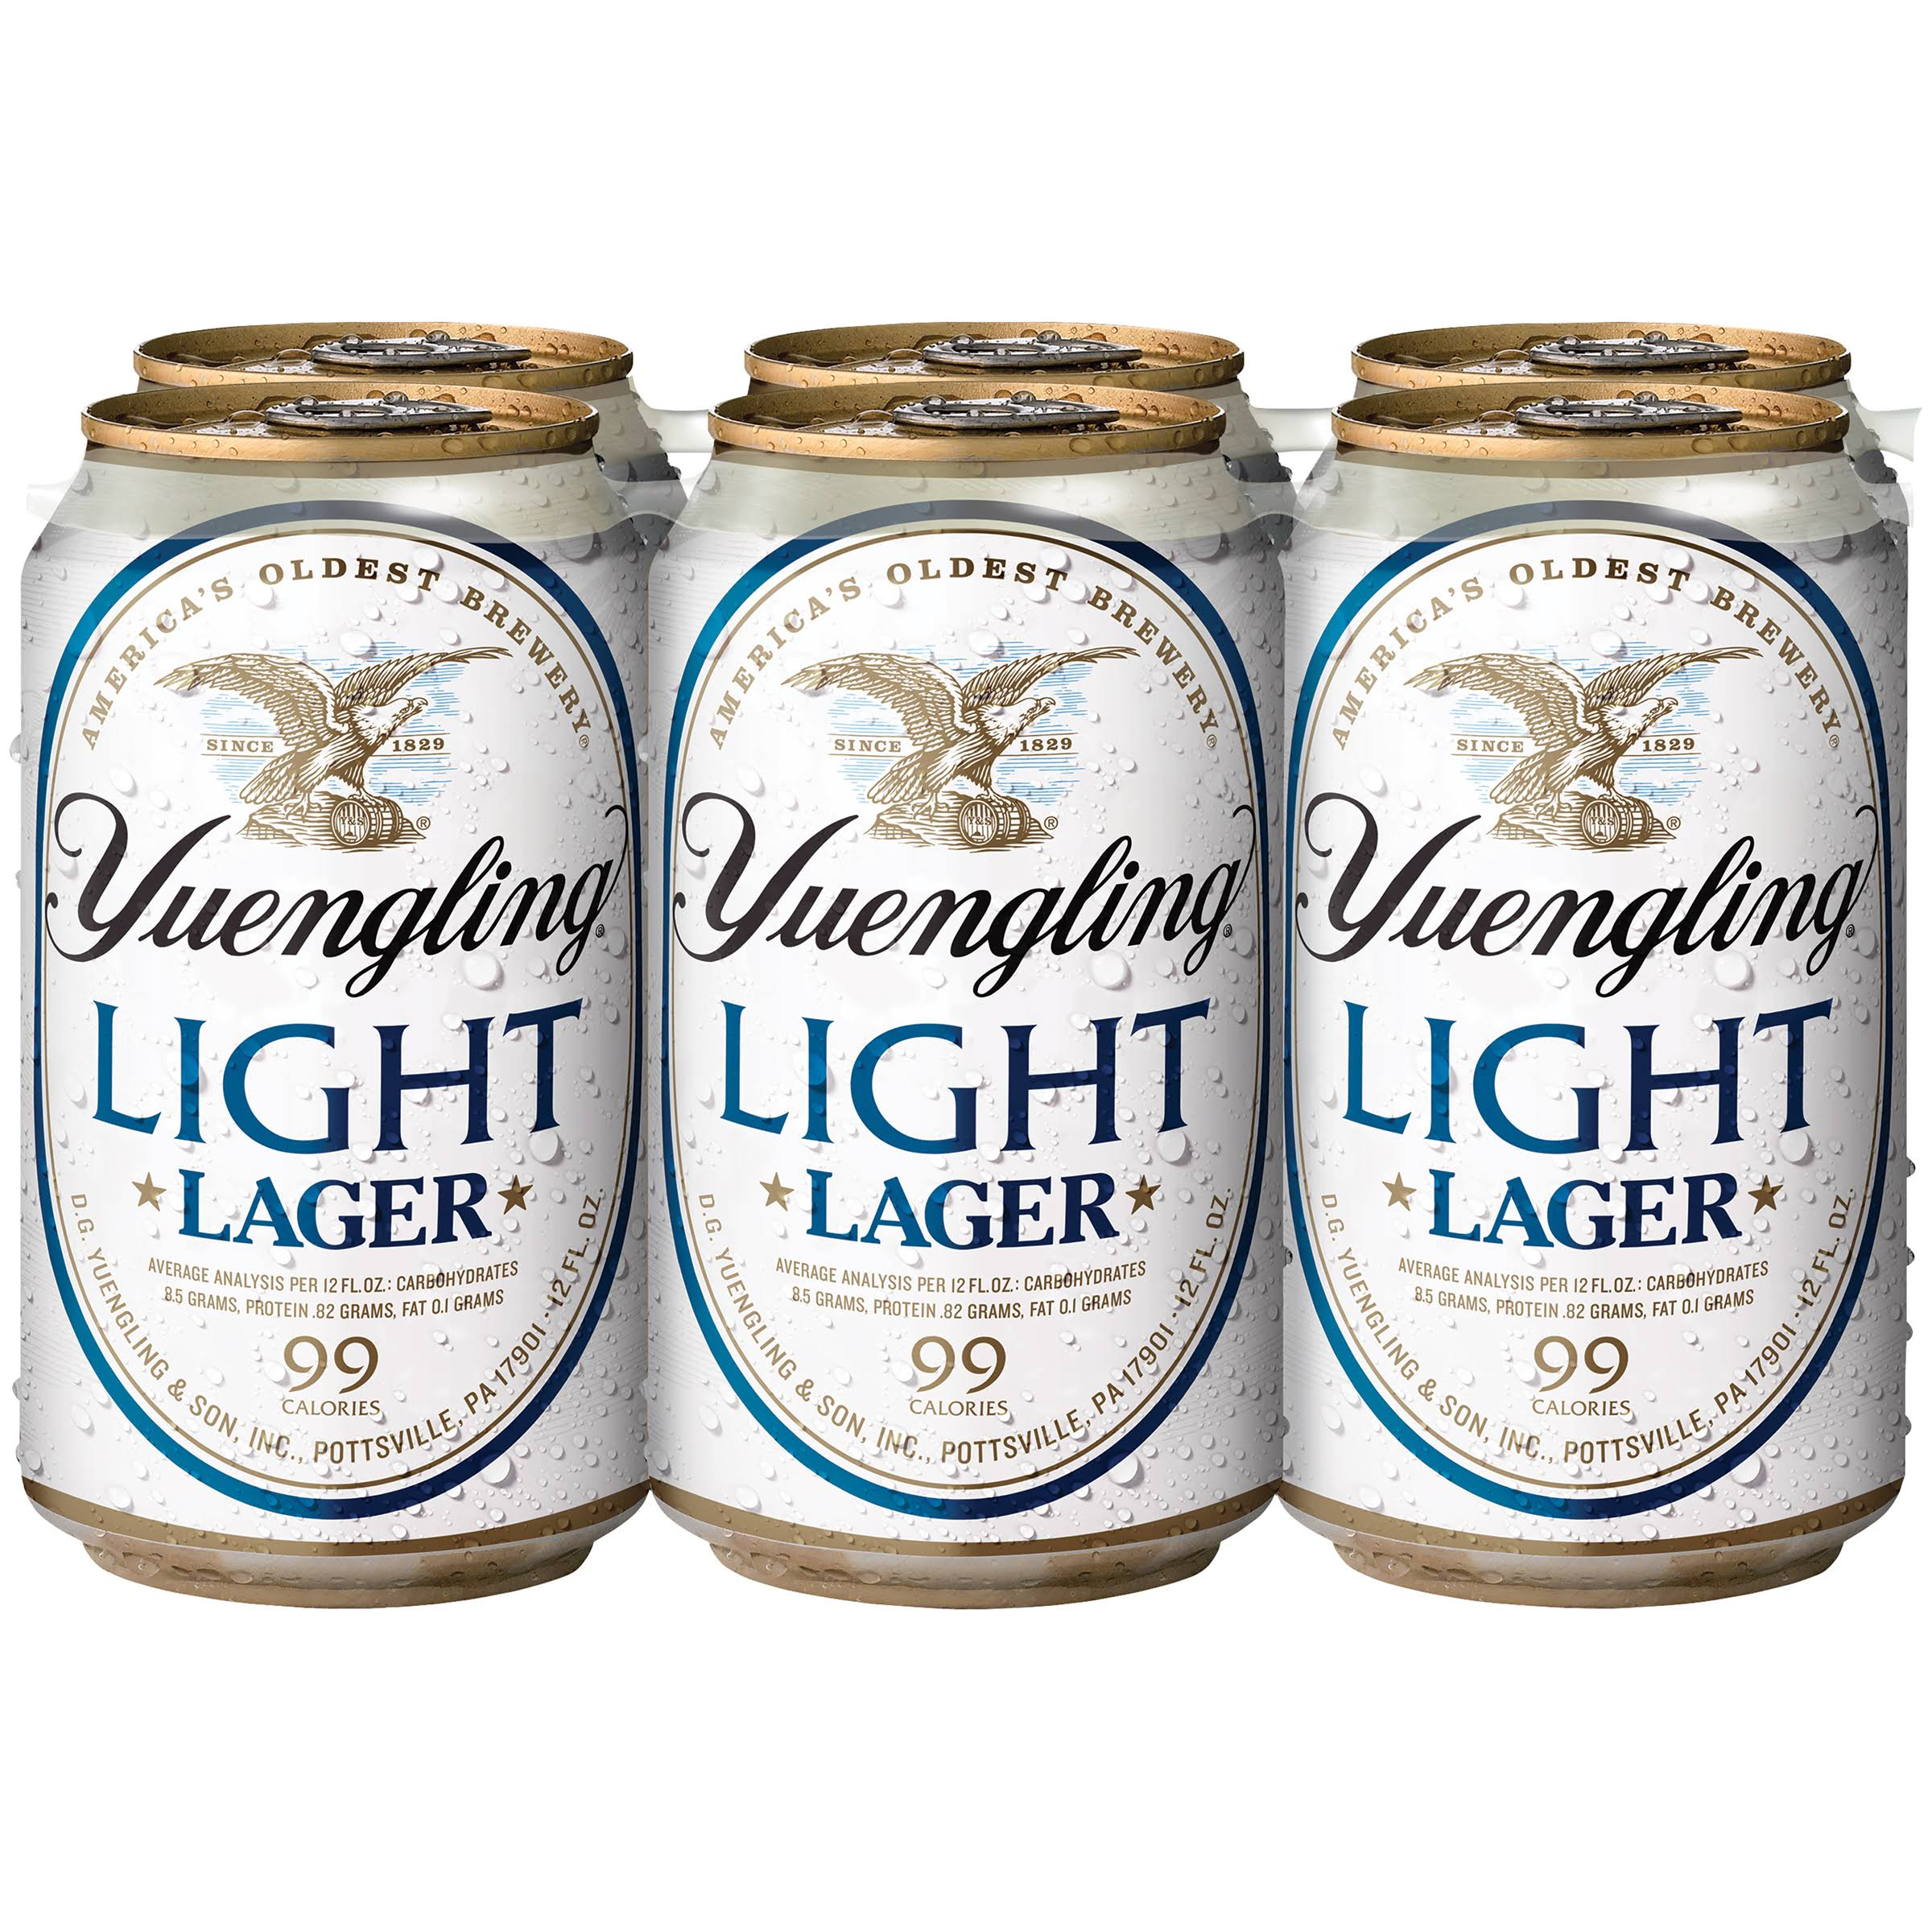 Yuengling Light Lager 6-12 Fl. Oz. Cans